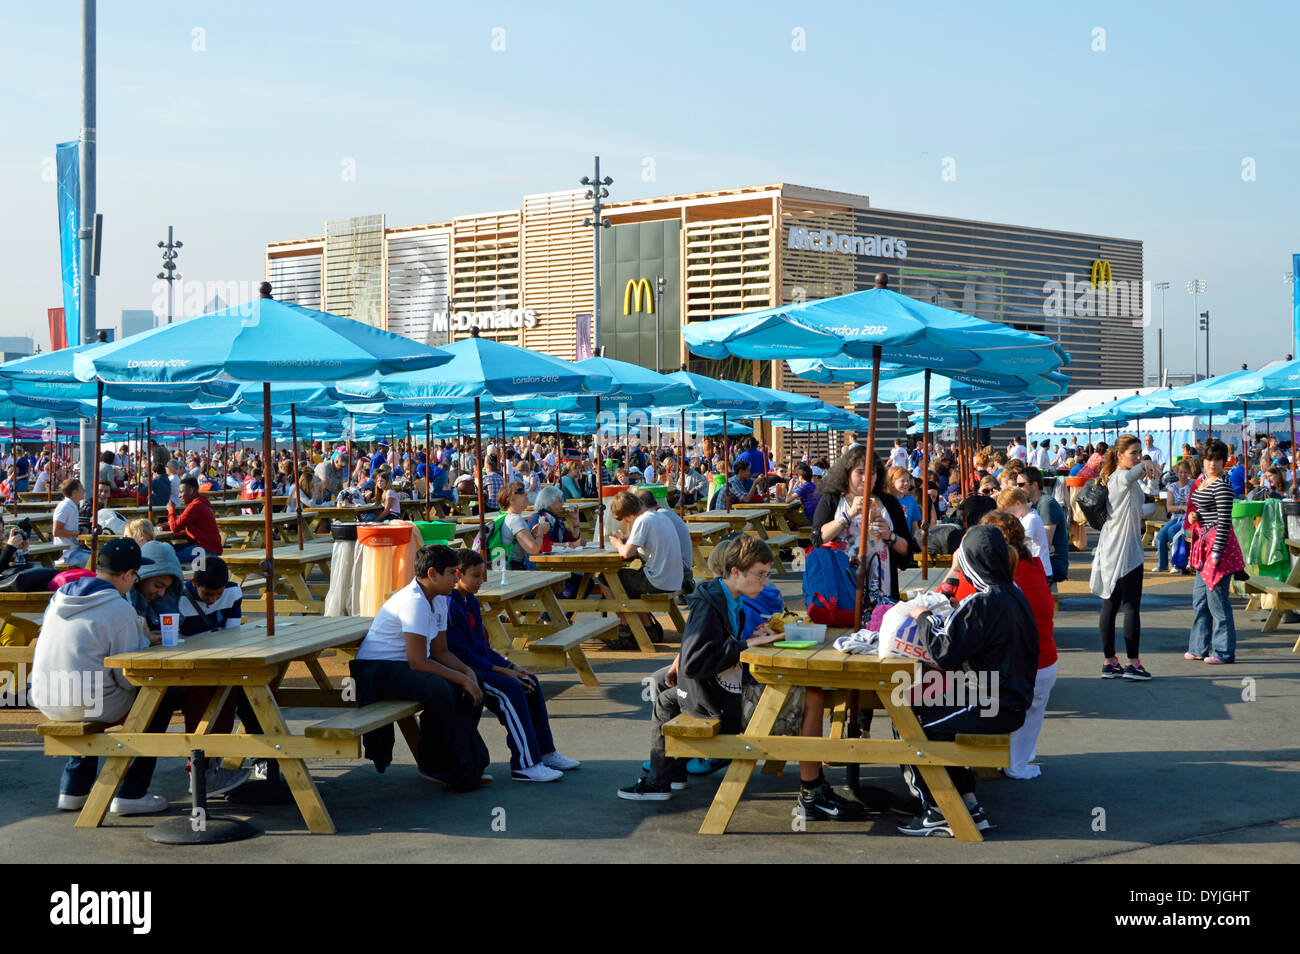 Picnic Benches Parasols London 2012 Olympic Park With Temporary McDonalds Store Supplying Morning Breakfast For